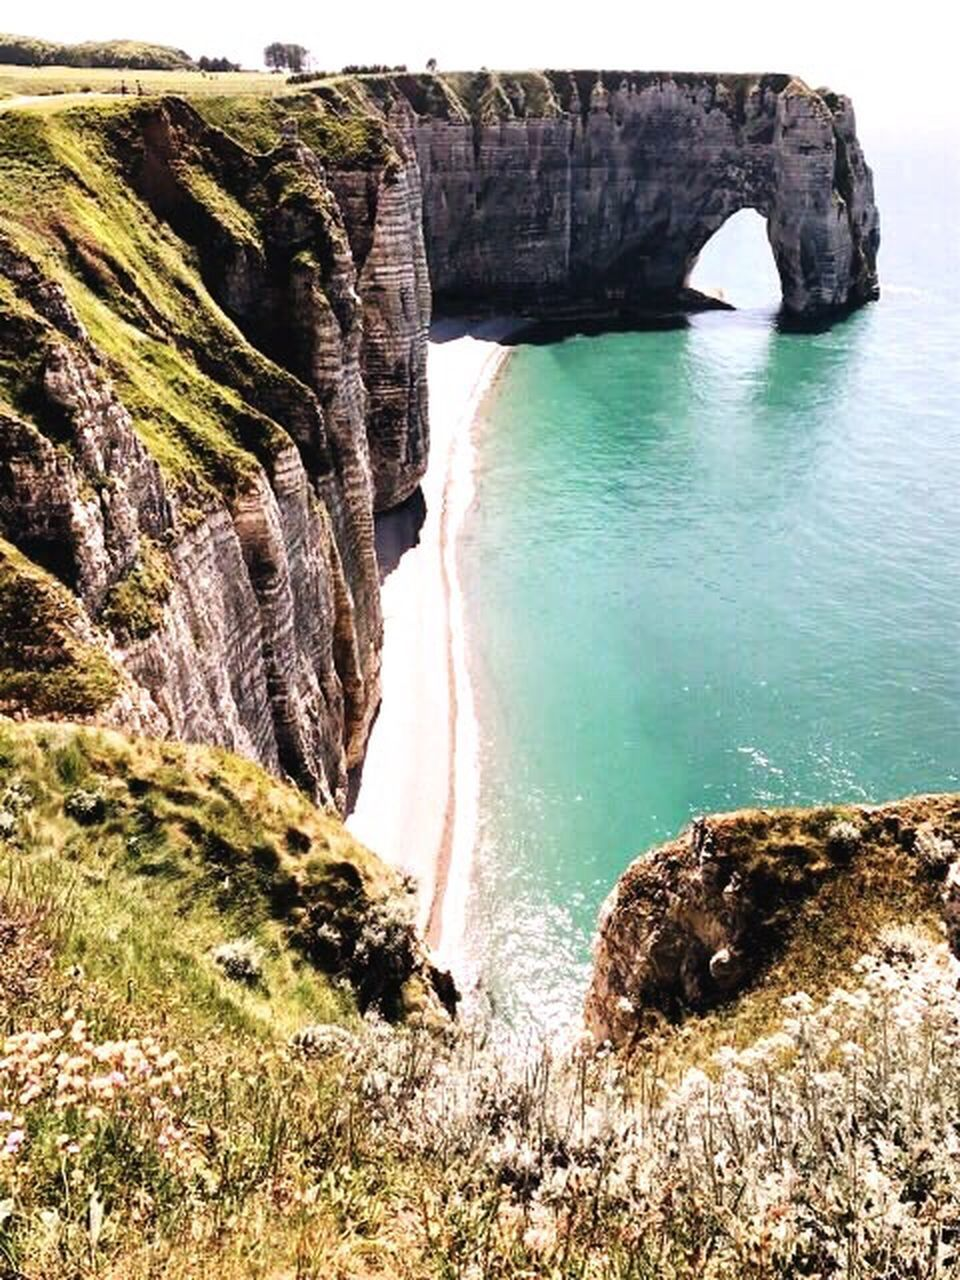 rock - object, rock formation, water, nature, beauty in nature, physical geography, cliff, sea, scenics, day, no people, outdoors